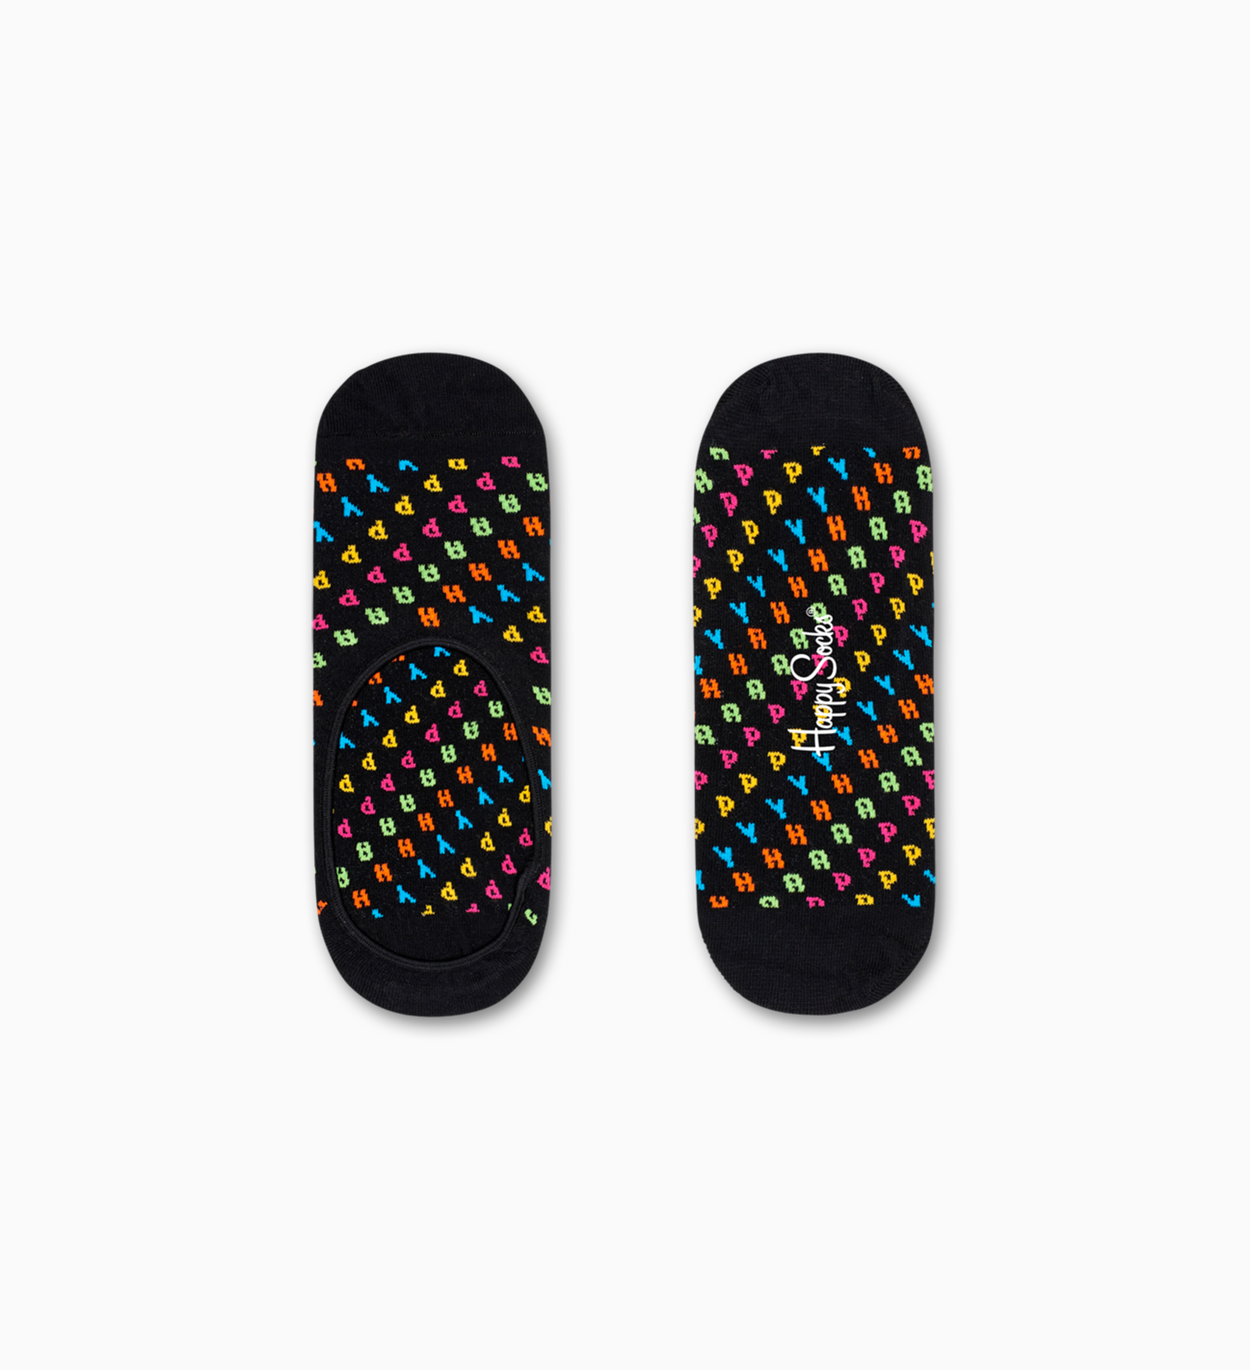 Chaussettes invisibles Noires: Happy | Happy Socks